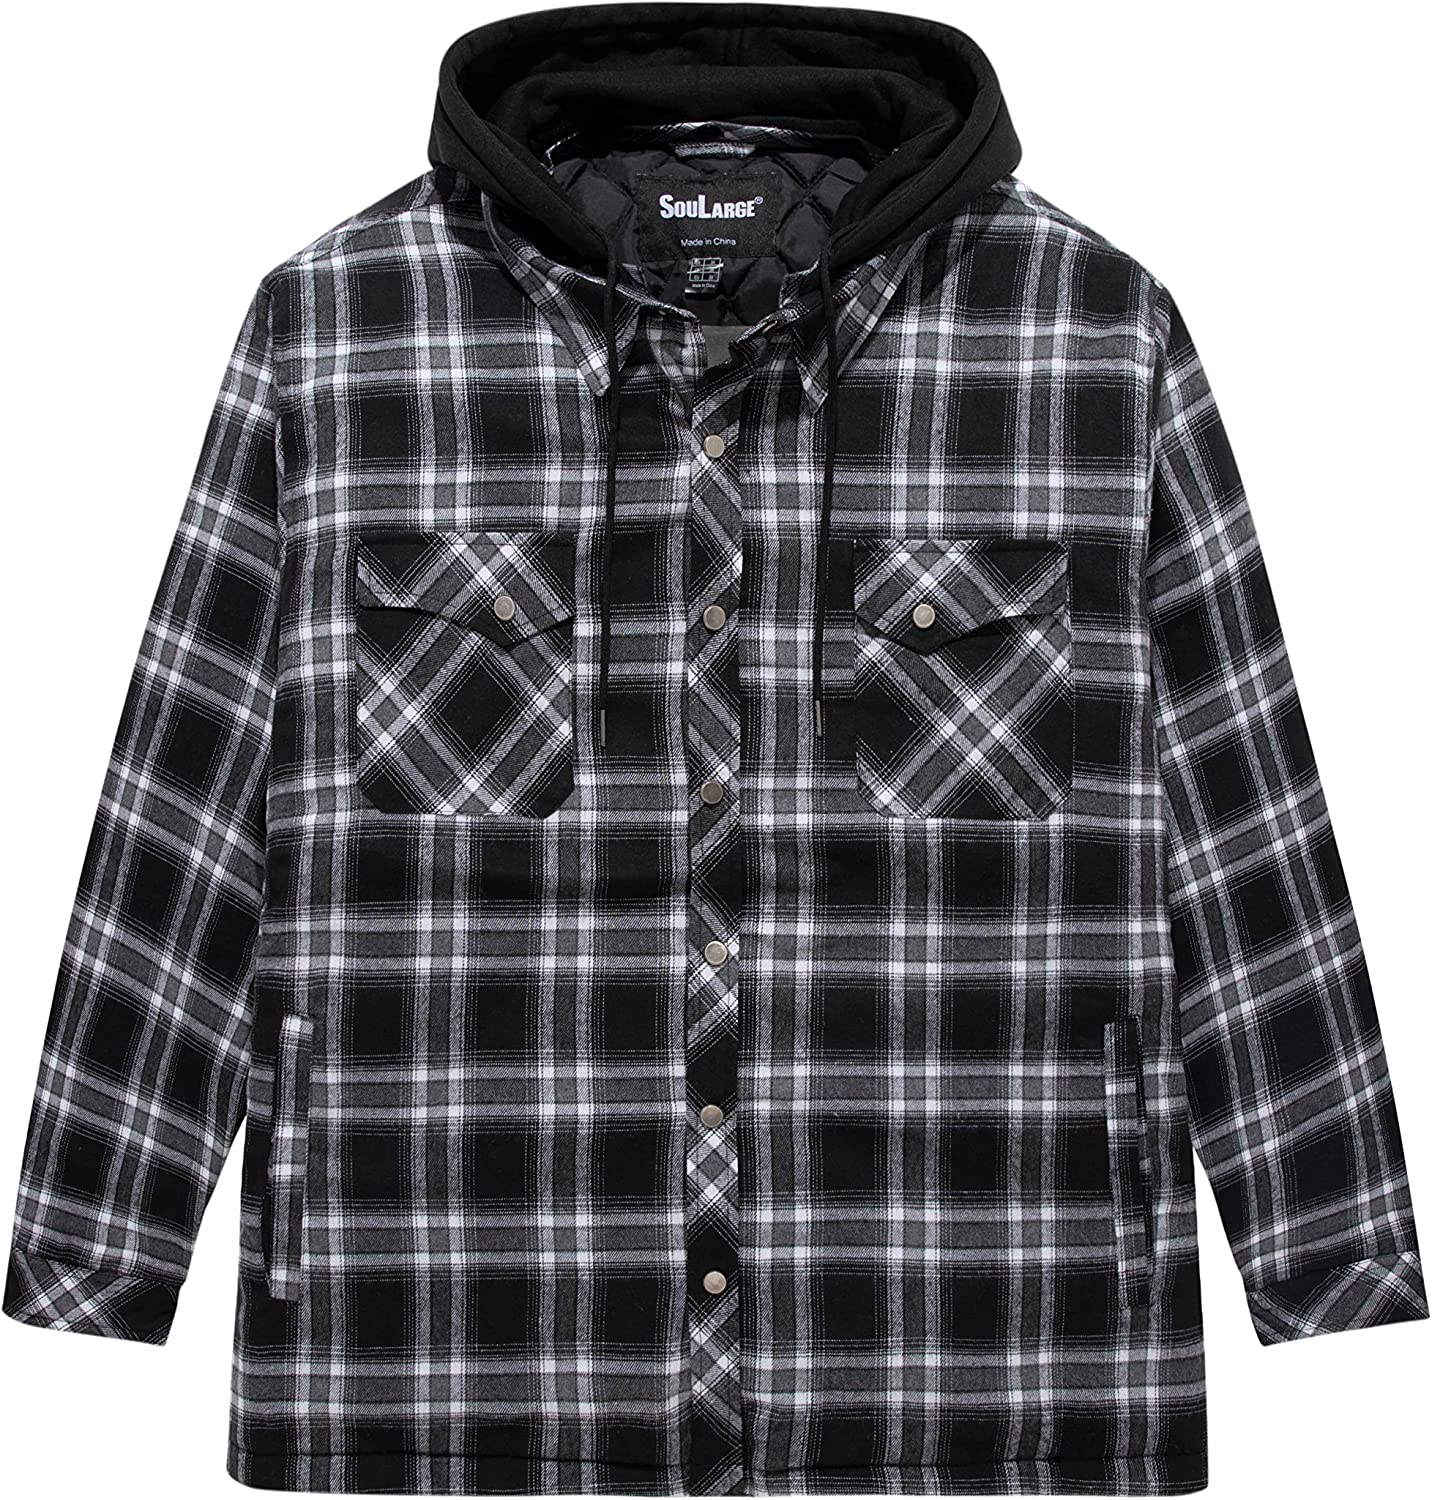 Soularge Men's Big and Tall Thicken Plaid Cotton Quilted Shirt Jacket with Hood